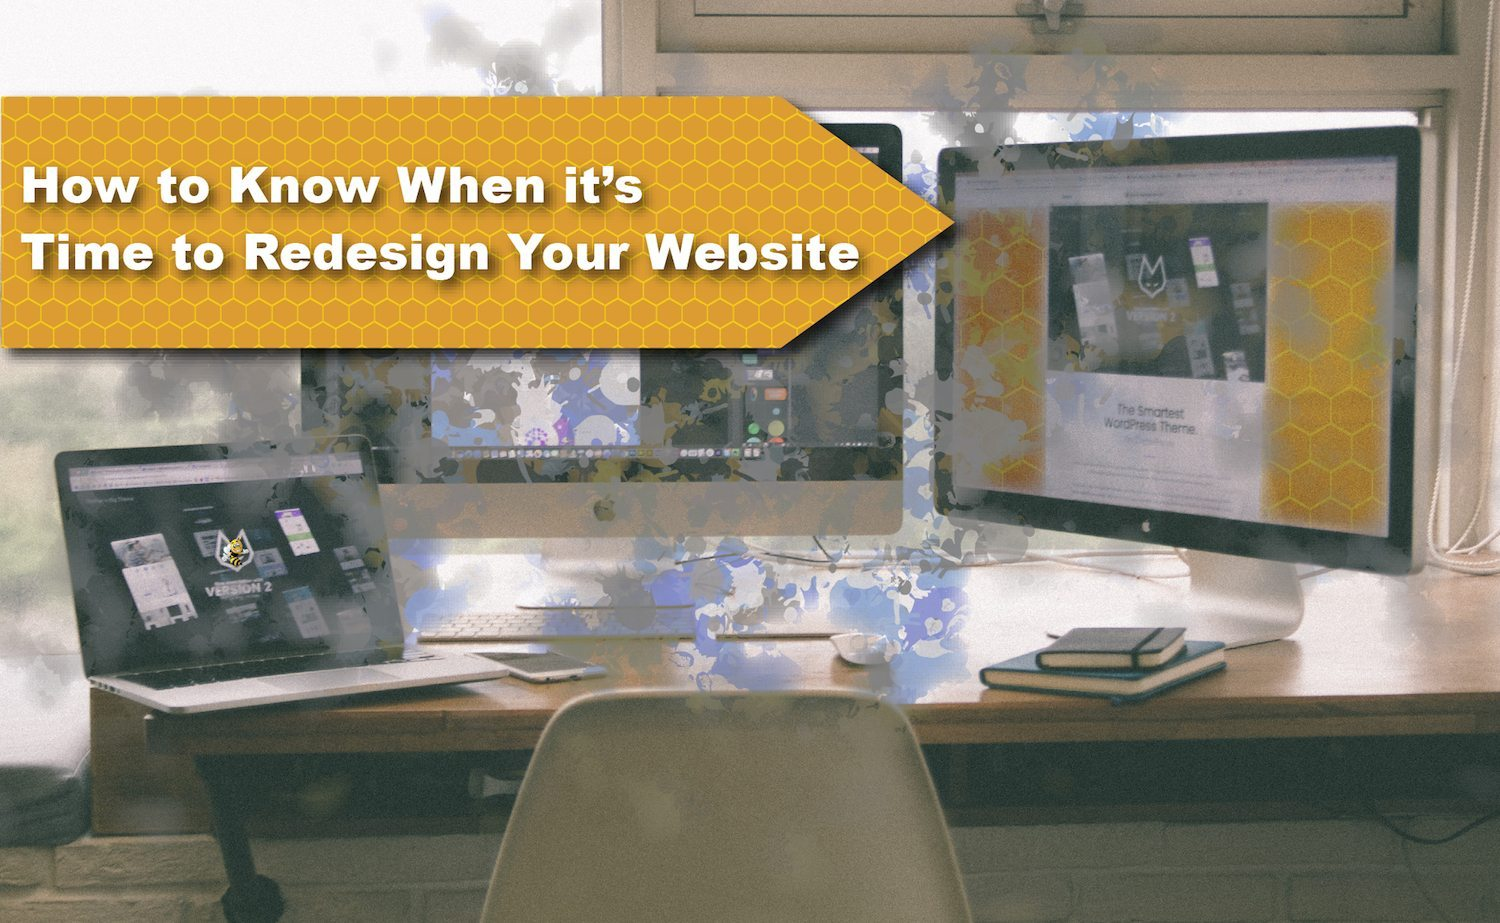 How to Know When It's Time to Redesign Your Website